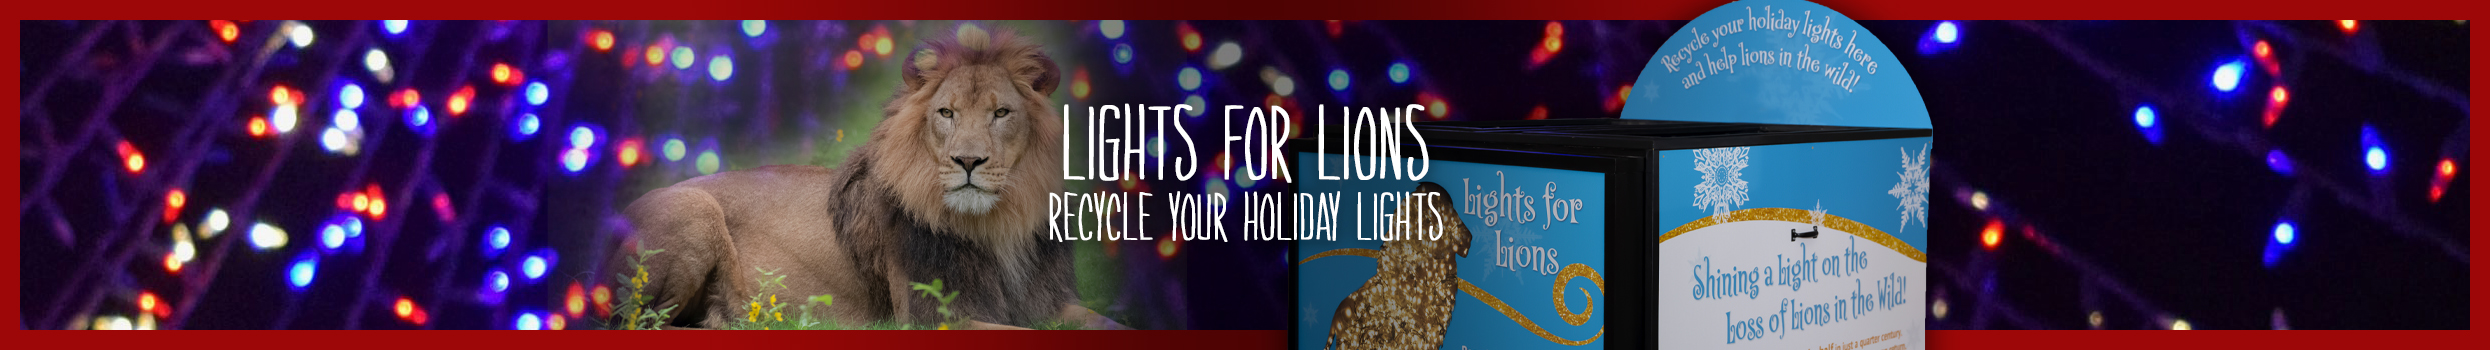 lights-for-lions-header-slider